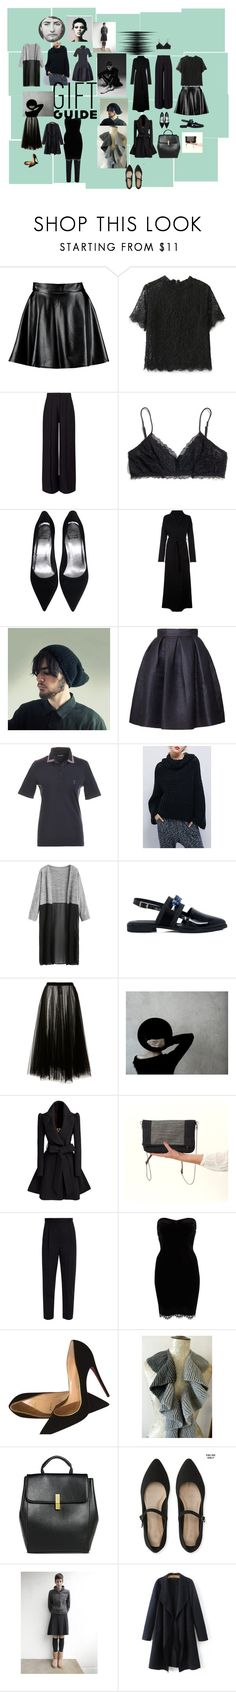 """FOR YOU"" by talma-vardi on Polyvore featuring Boohoo, Miss Selfridge, Madewell, Unravel, Orla Kiely, Mother of Pearl, Rochas, Alexander McQueen, River Island and Christian Louboutin"